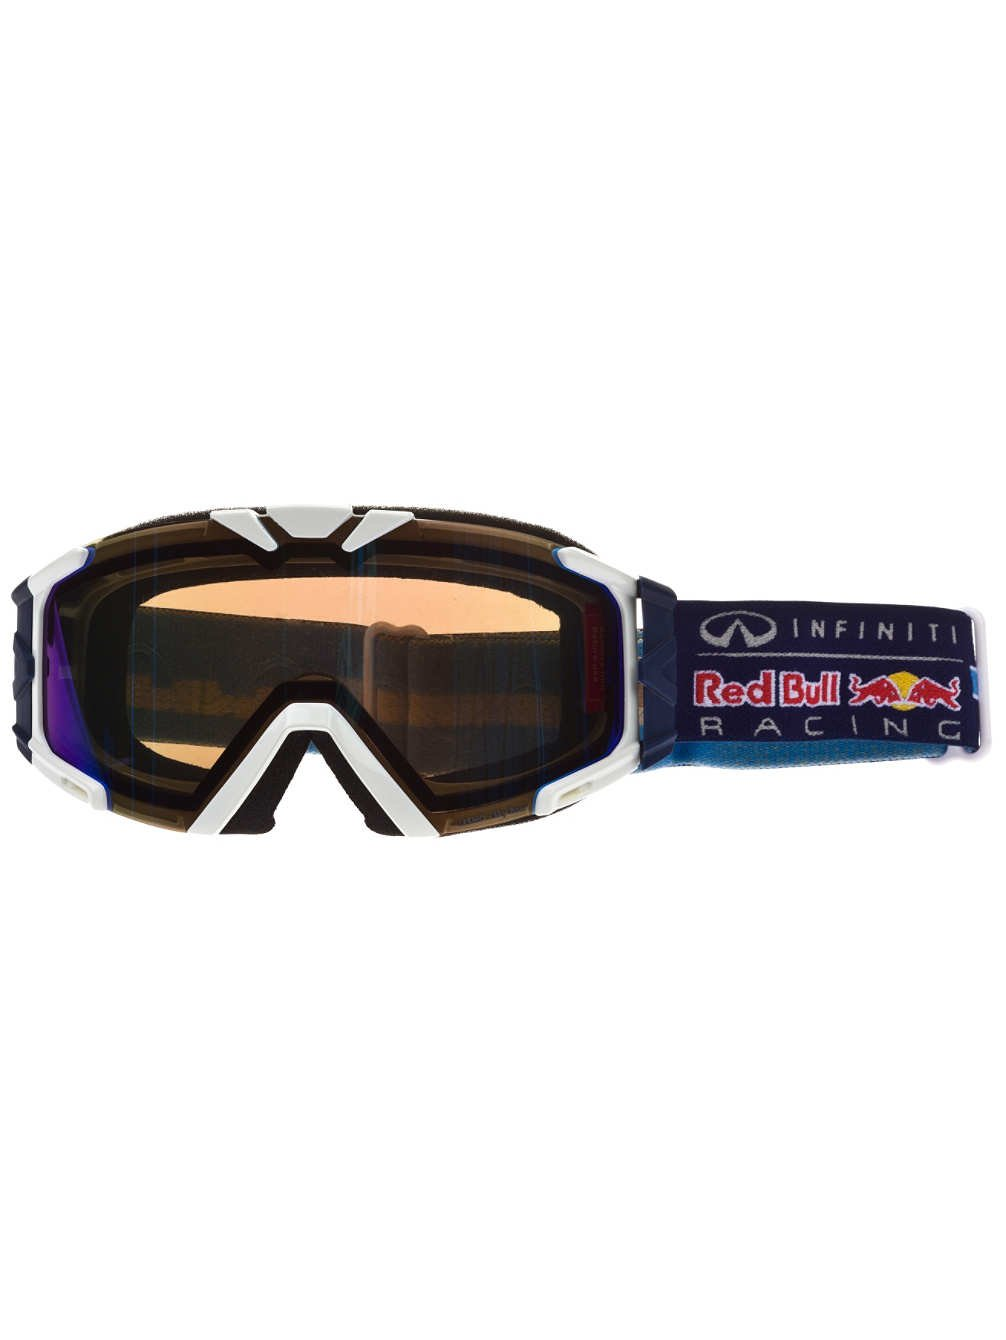 Hombres gafas de nieve Red Bull Racing gafas Lesmo - Colour ...